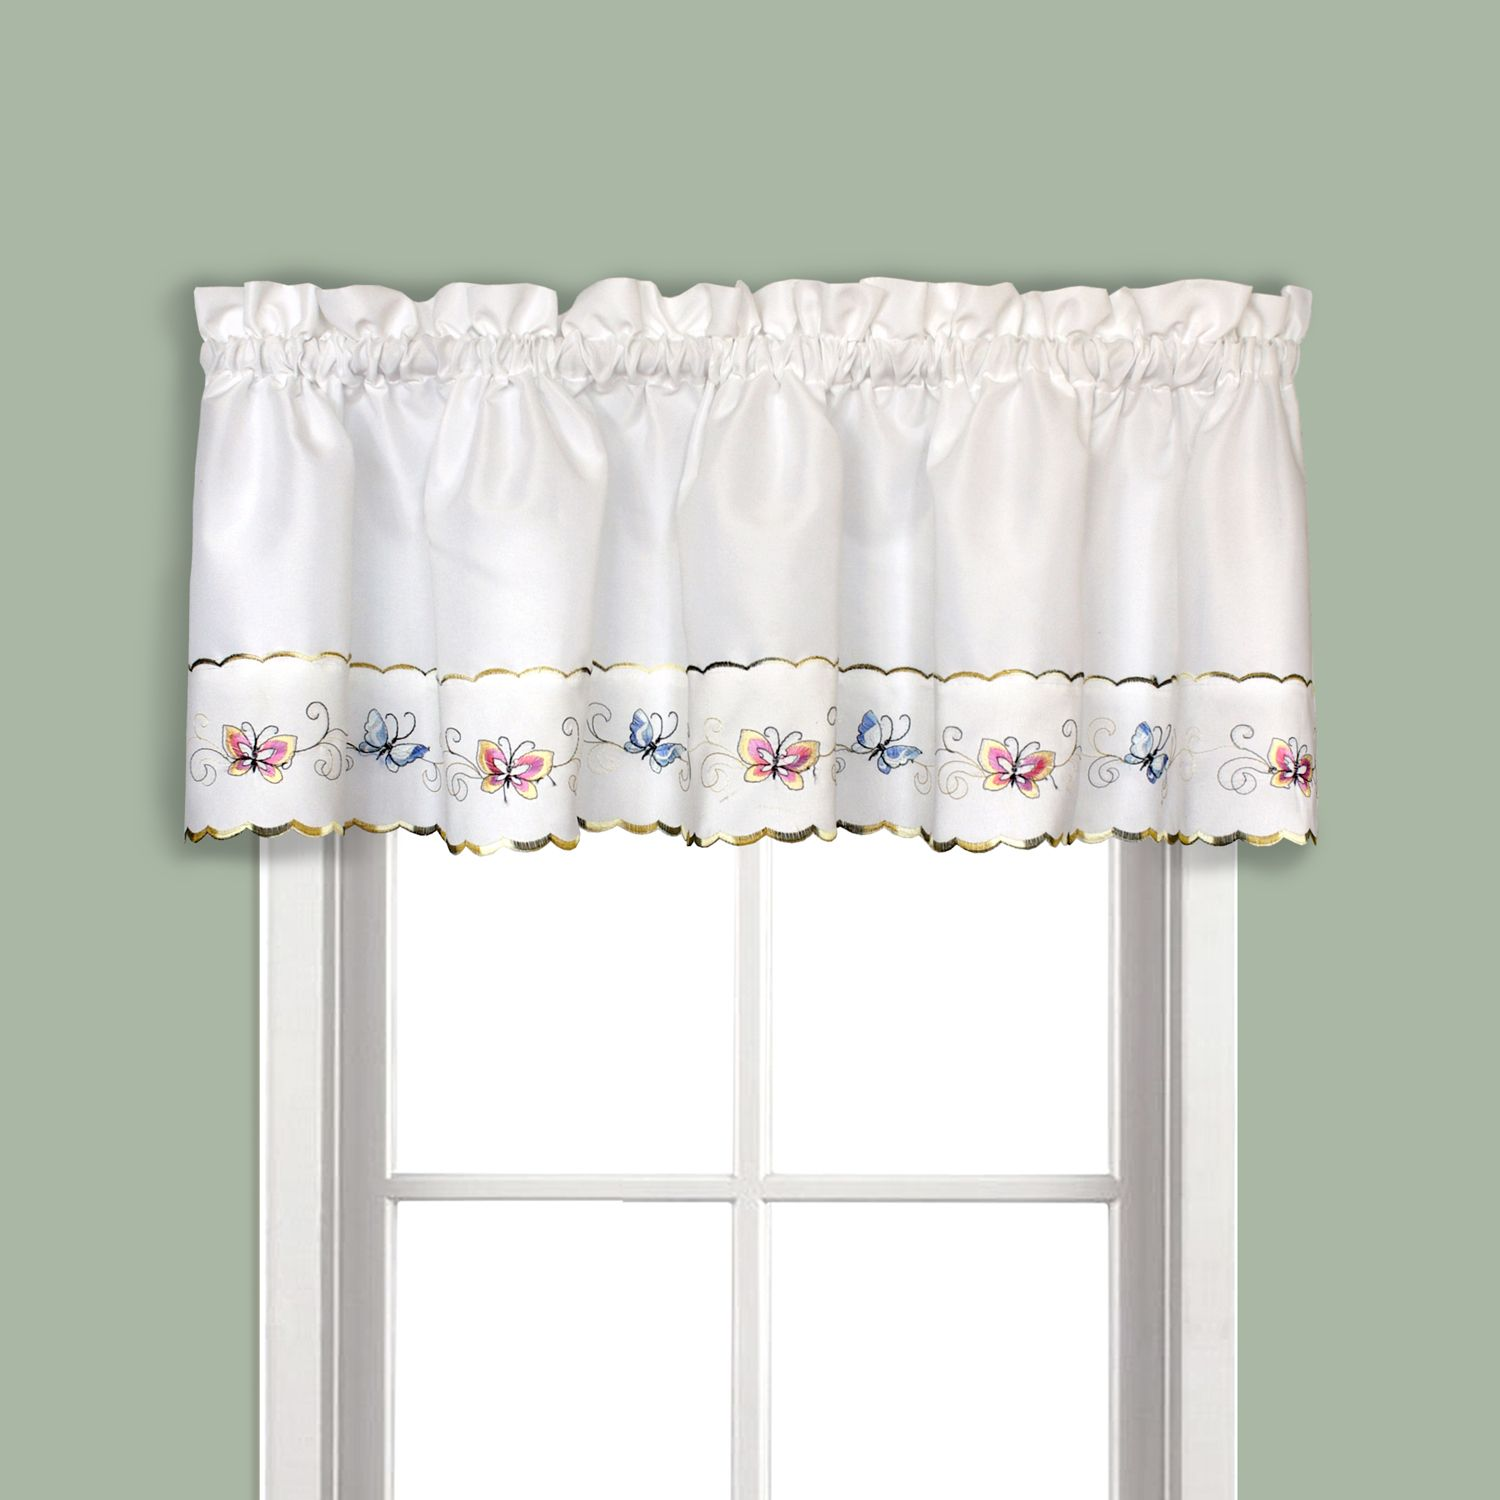 Butterfly Swag Tier Kitchen Window Curtains